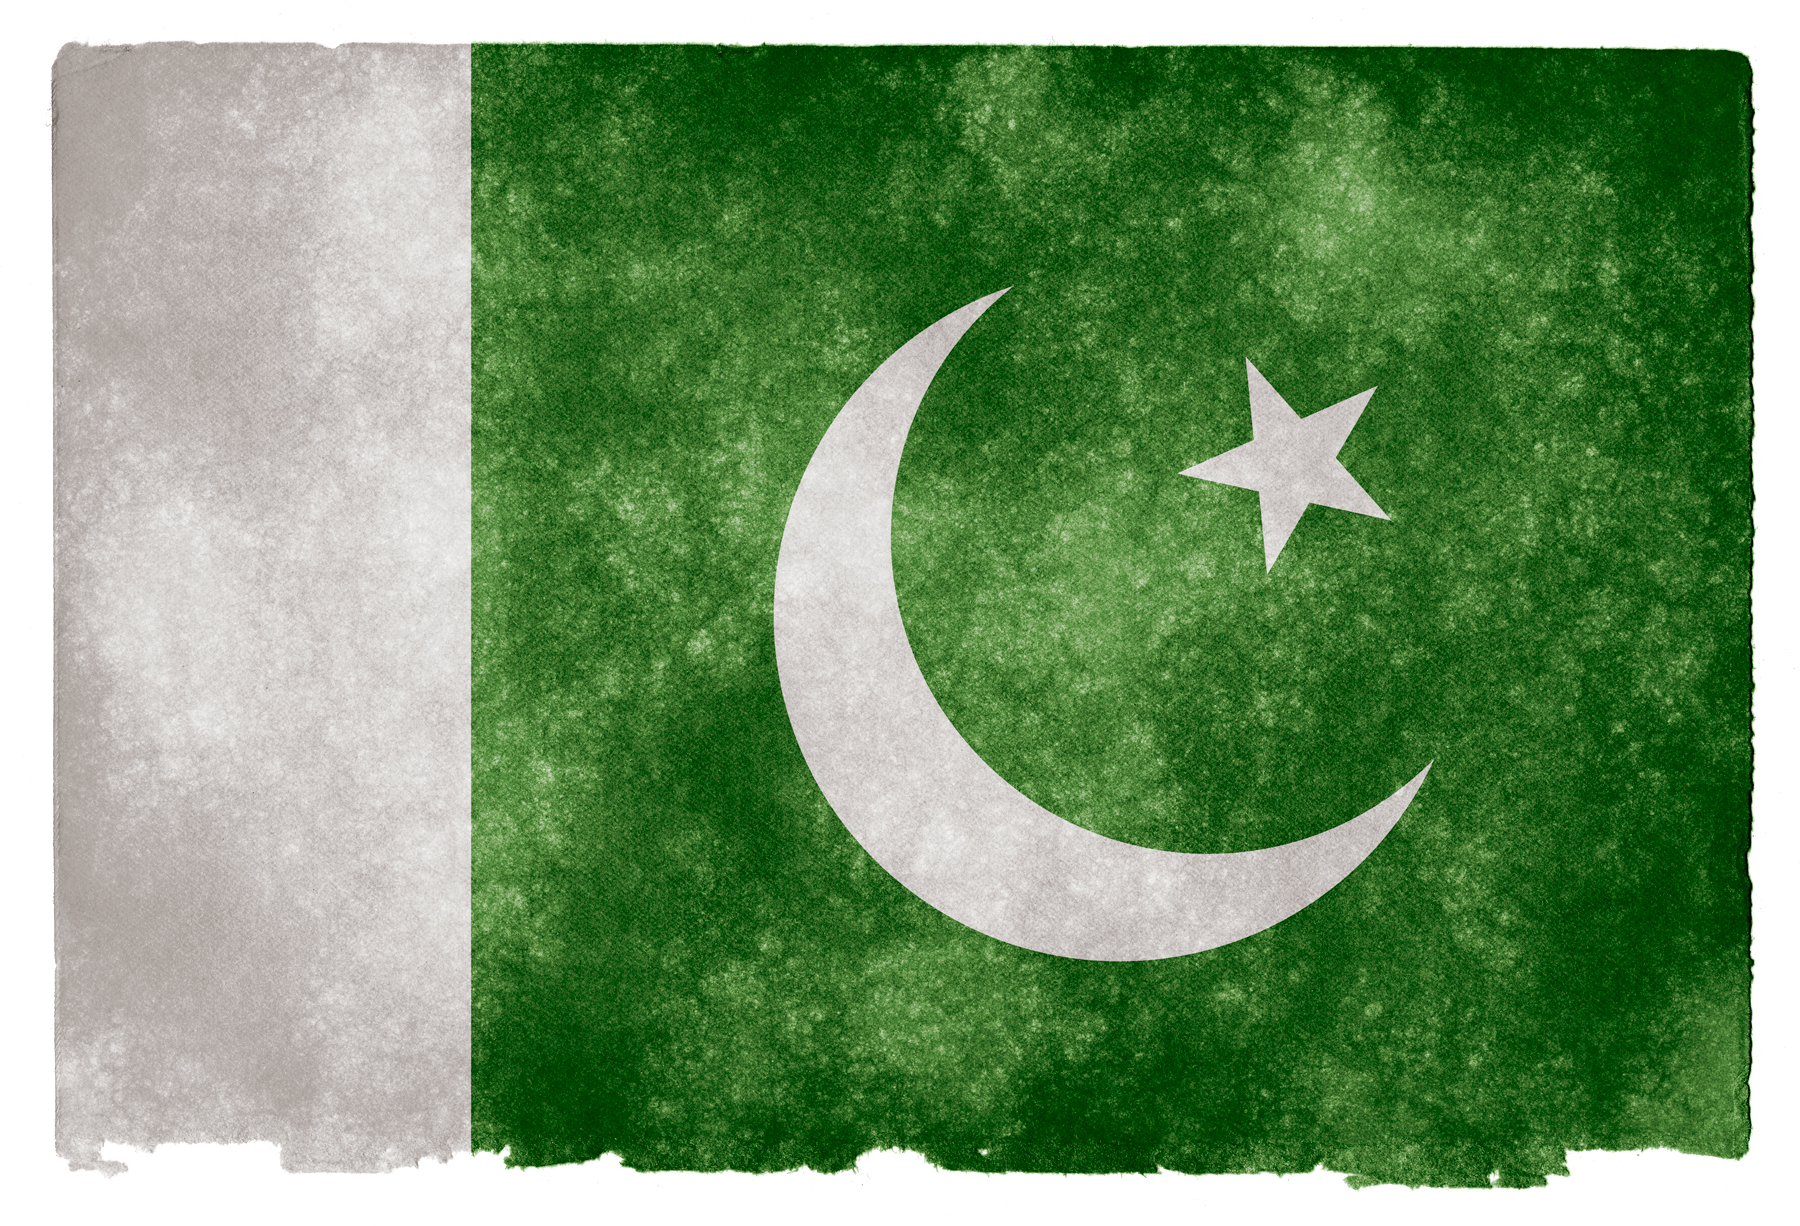 Persecution appears to be on the rise for Pakistani Christians